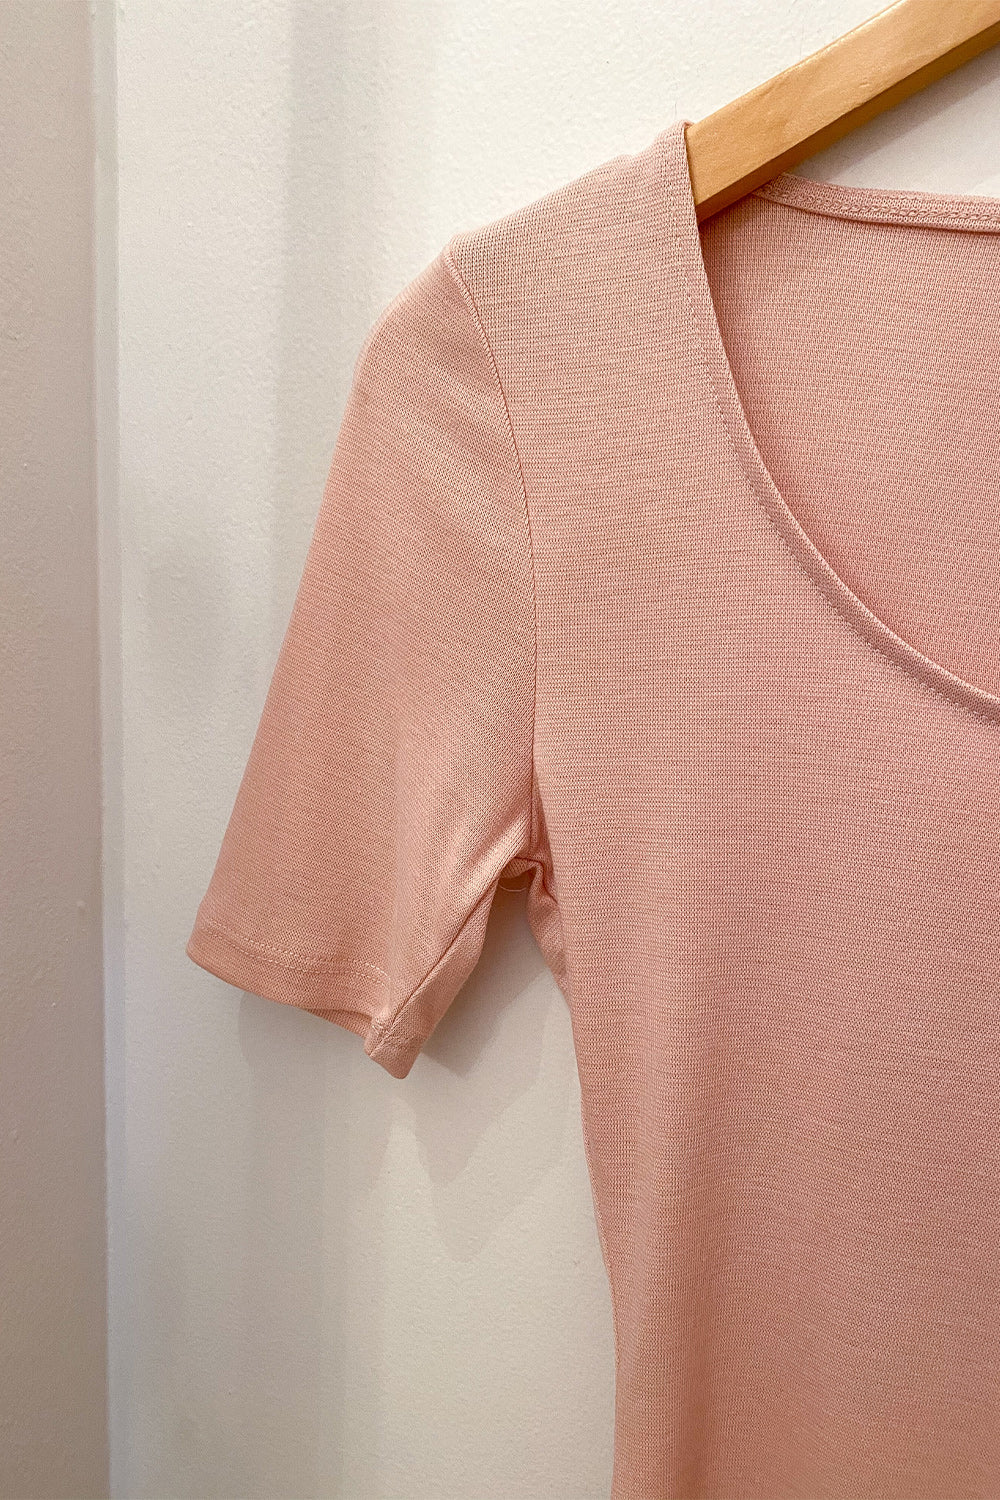 Back to Basics Pink Quarter Sleeve Scoopneck Bodysuit